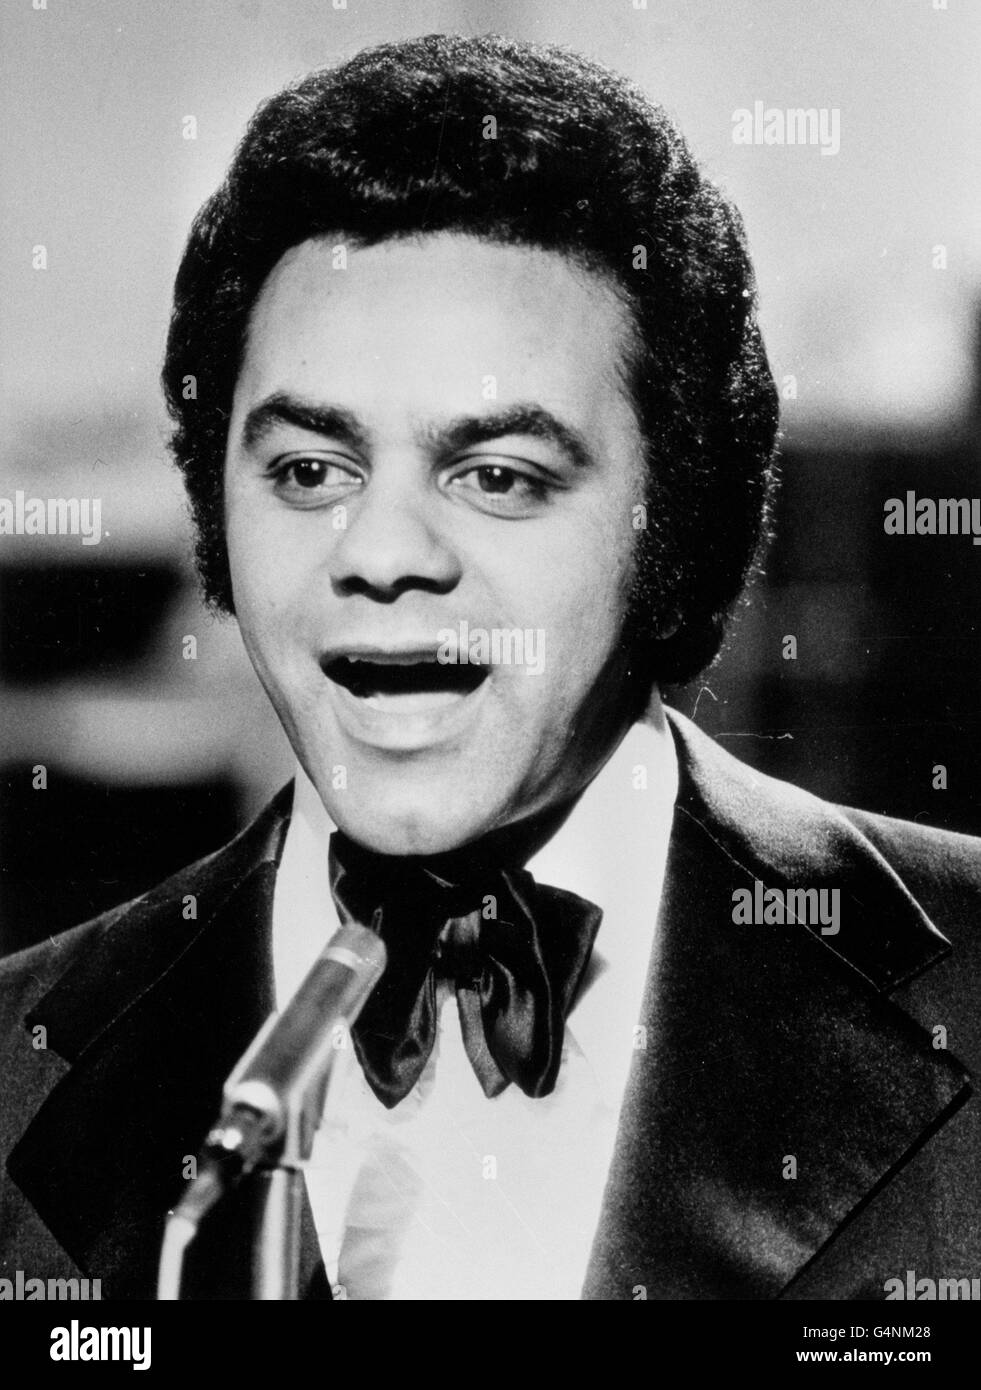 Music - Johnny Mathis - Stock Image